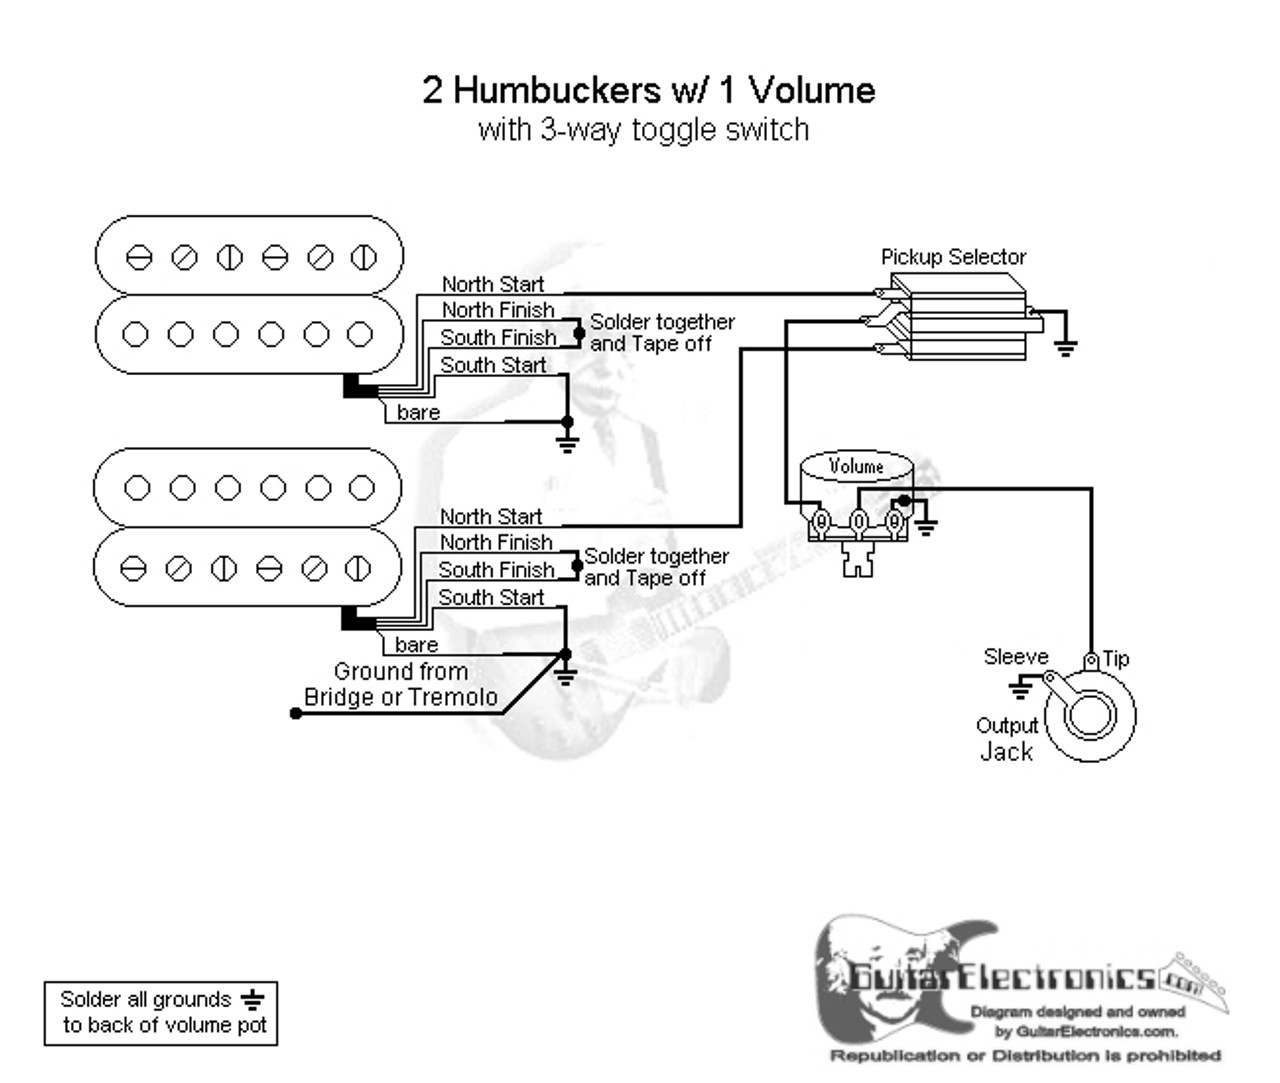 small resolution of hum 2 pickup wiring diagrams 2 humbuckers 3 way toggle switch 1 volumewd2hh3t10 00 38554 1470694344 jpg c u003d2